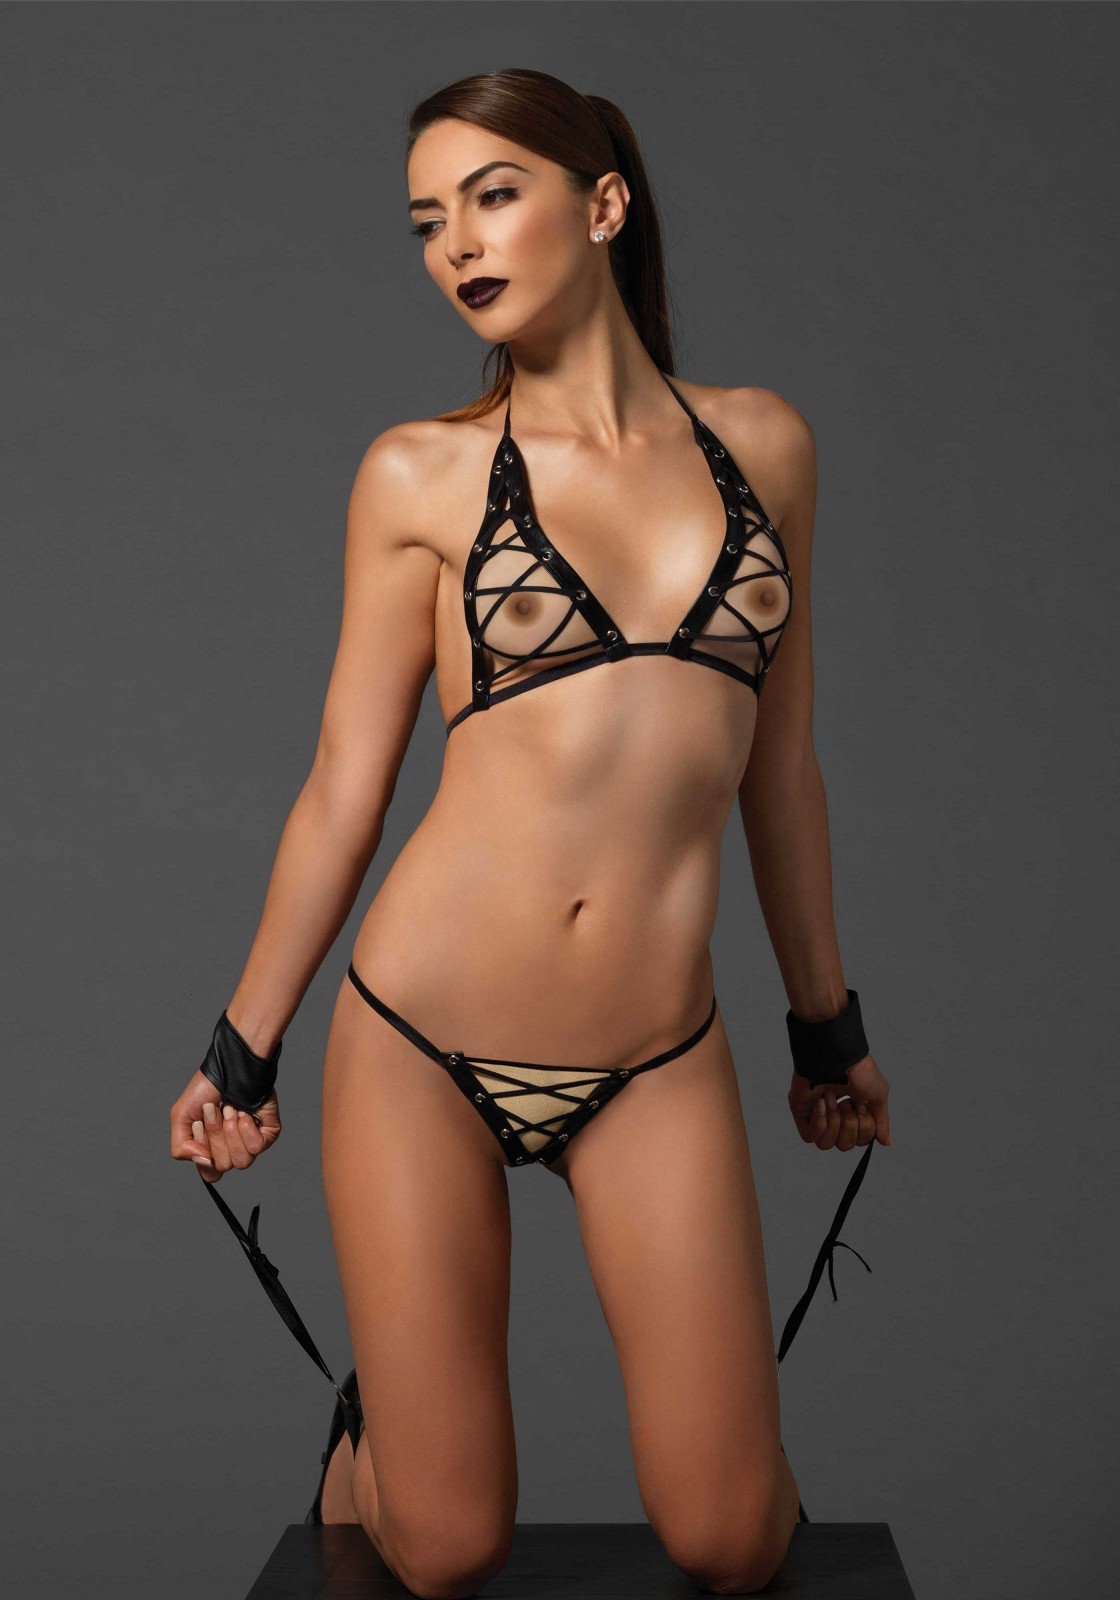 3 PC. Grommet lace up bra with elastic straps, g-string and D-ring velcro closure wrist-ankle restraints.